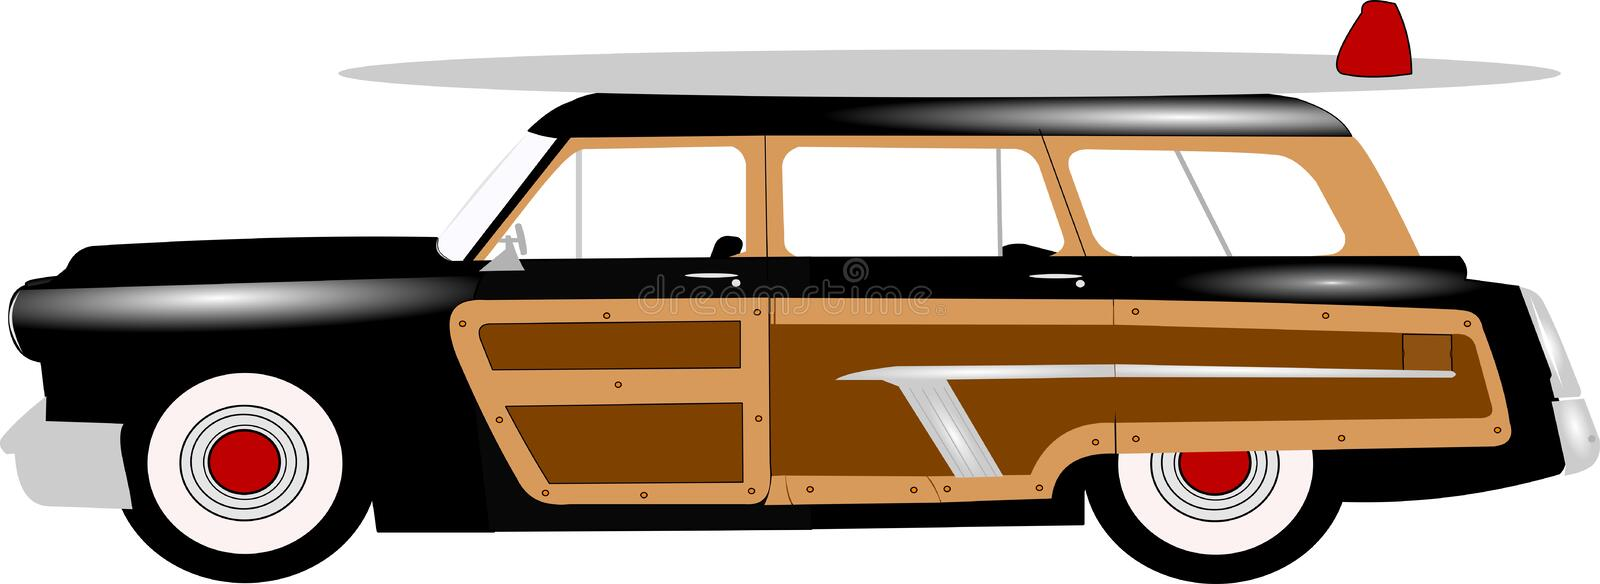 Woody station wagon. From fifties and sixties with surf board on top of roof vector illustration